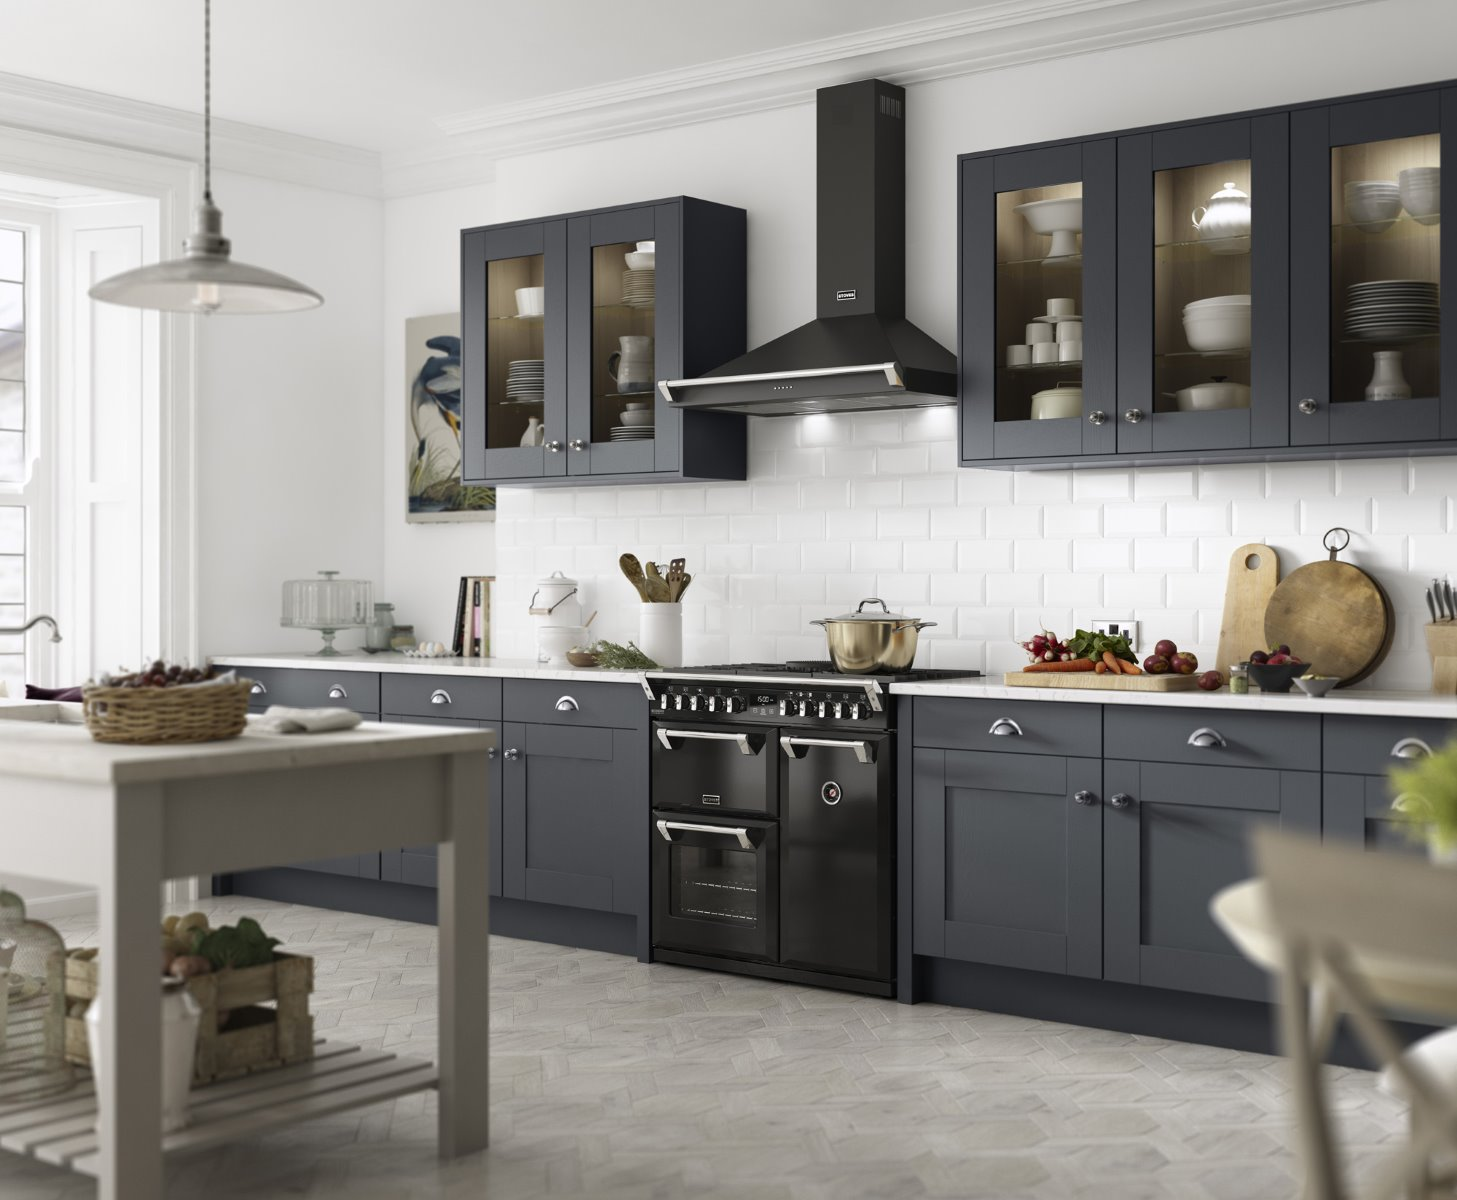 Stoves tranditional range cooker Set Visions CGI